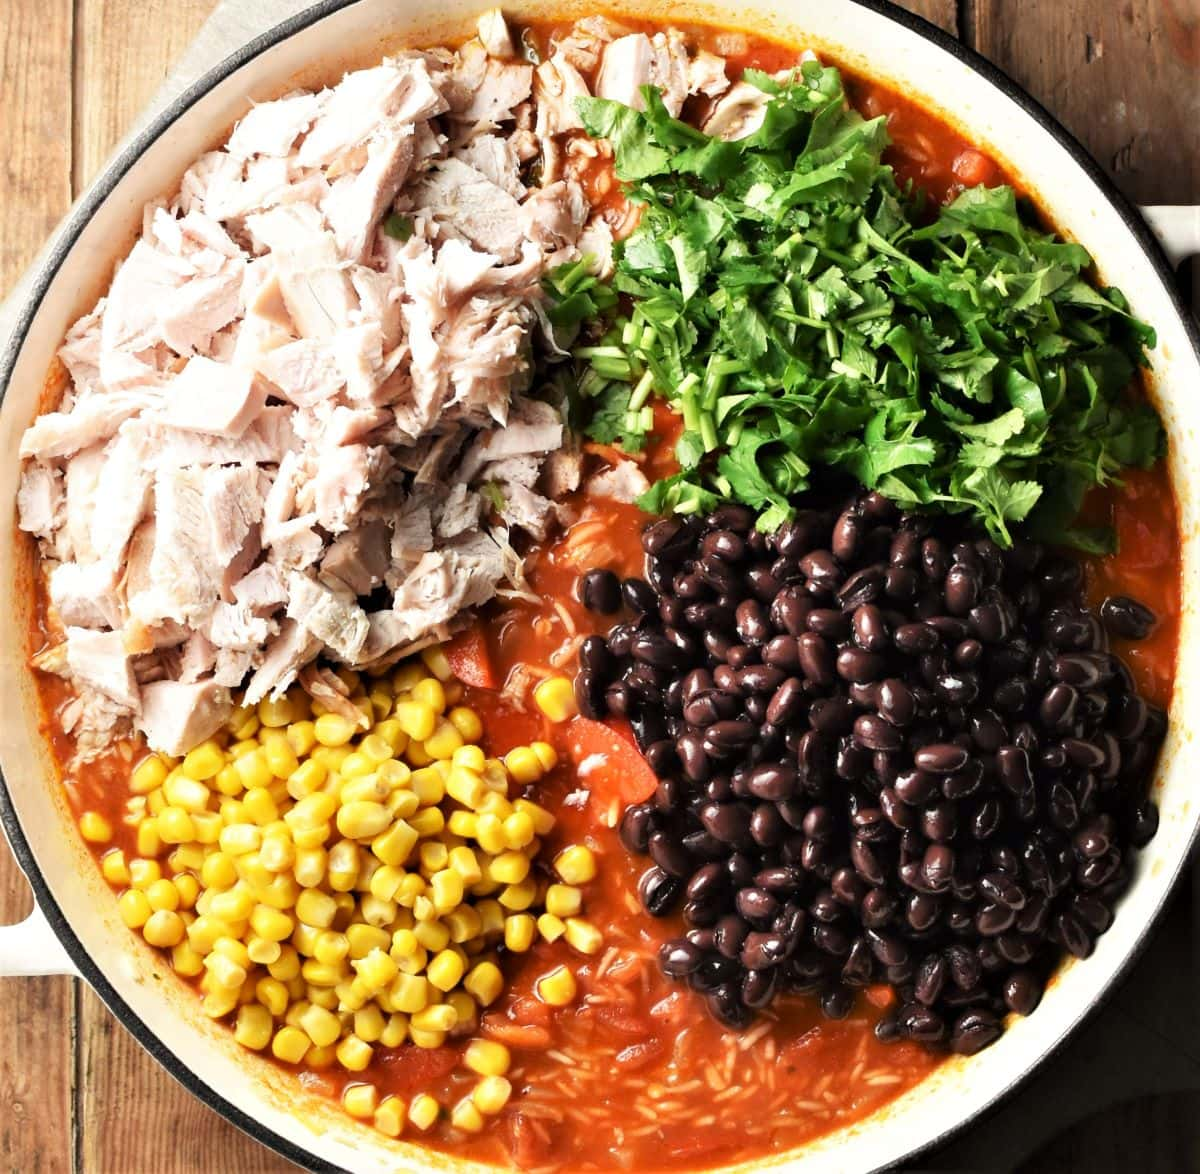 Chopped turkey, black beans, corn, herbs and tomato mixture in large pan.